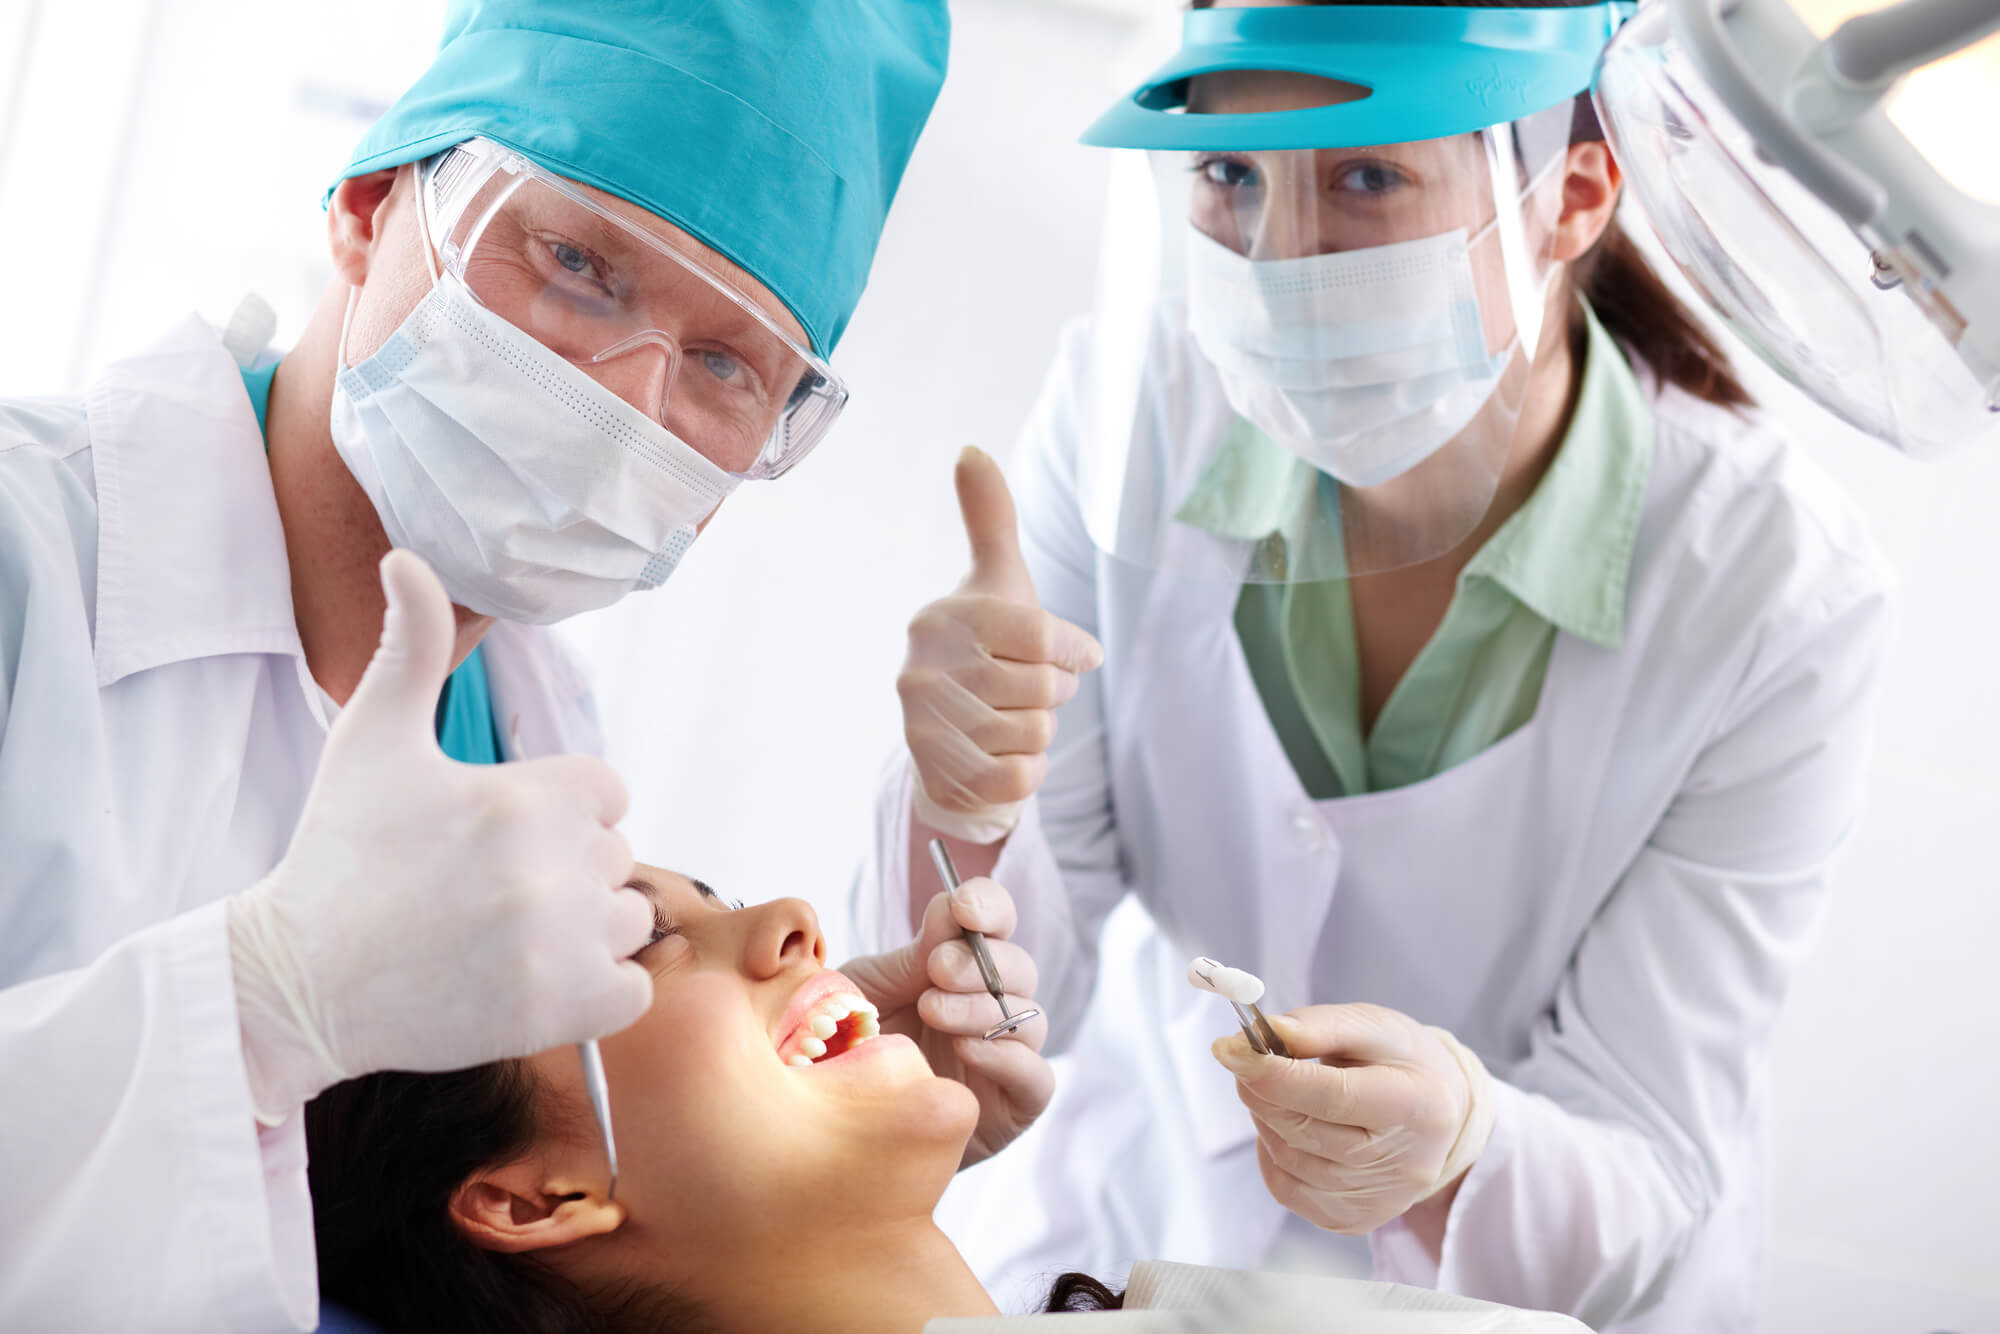 where is the best sedation dentistry miami?